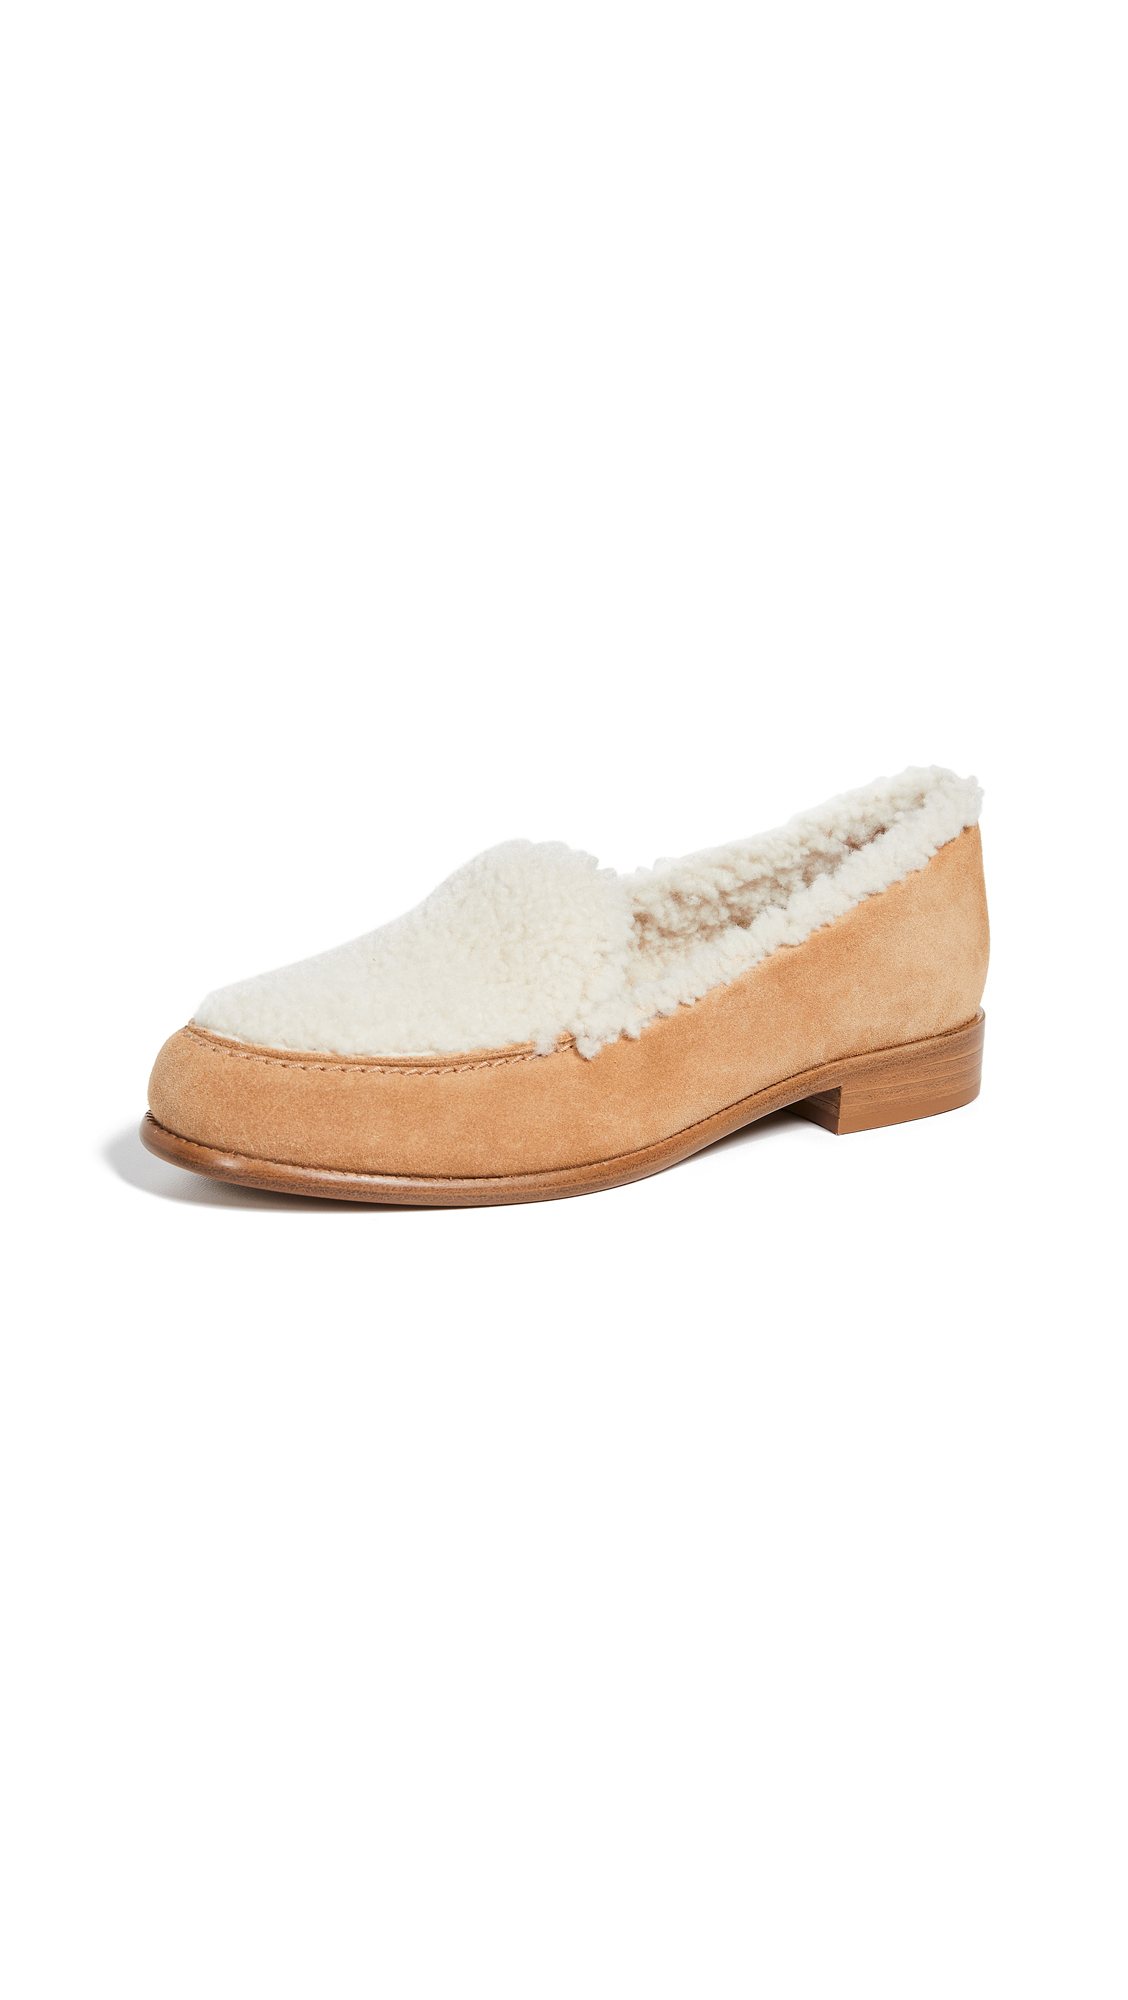 Tabitha Simmons Blakie Shearling Loafers - Shearling